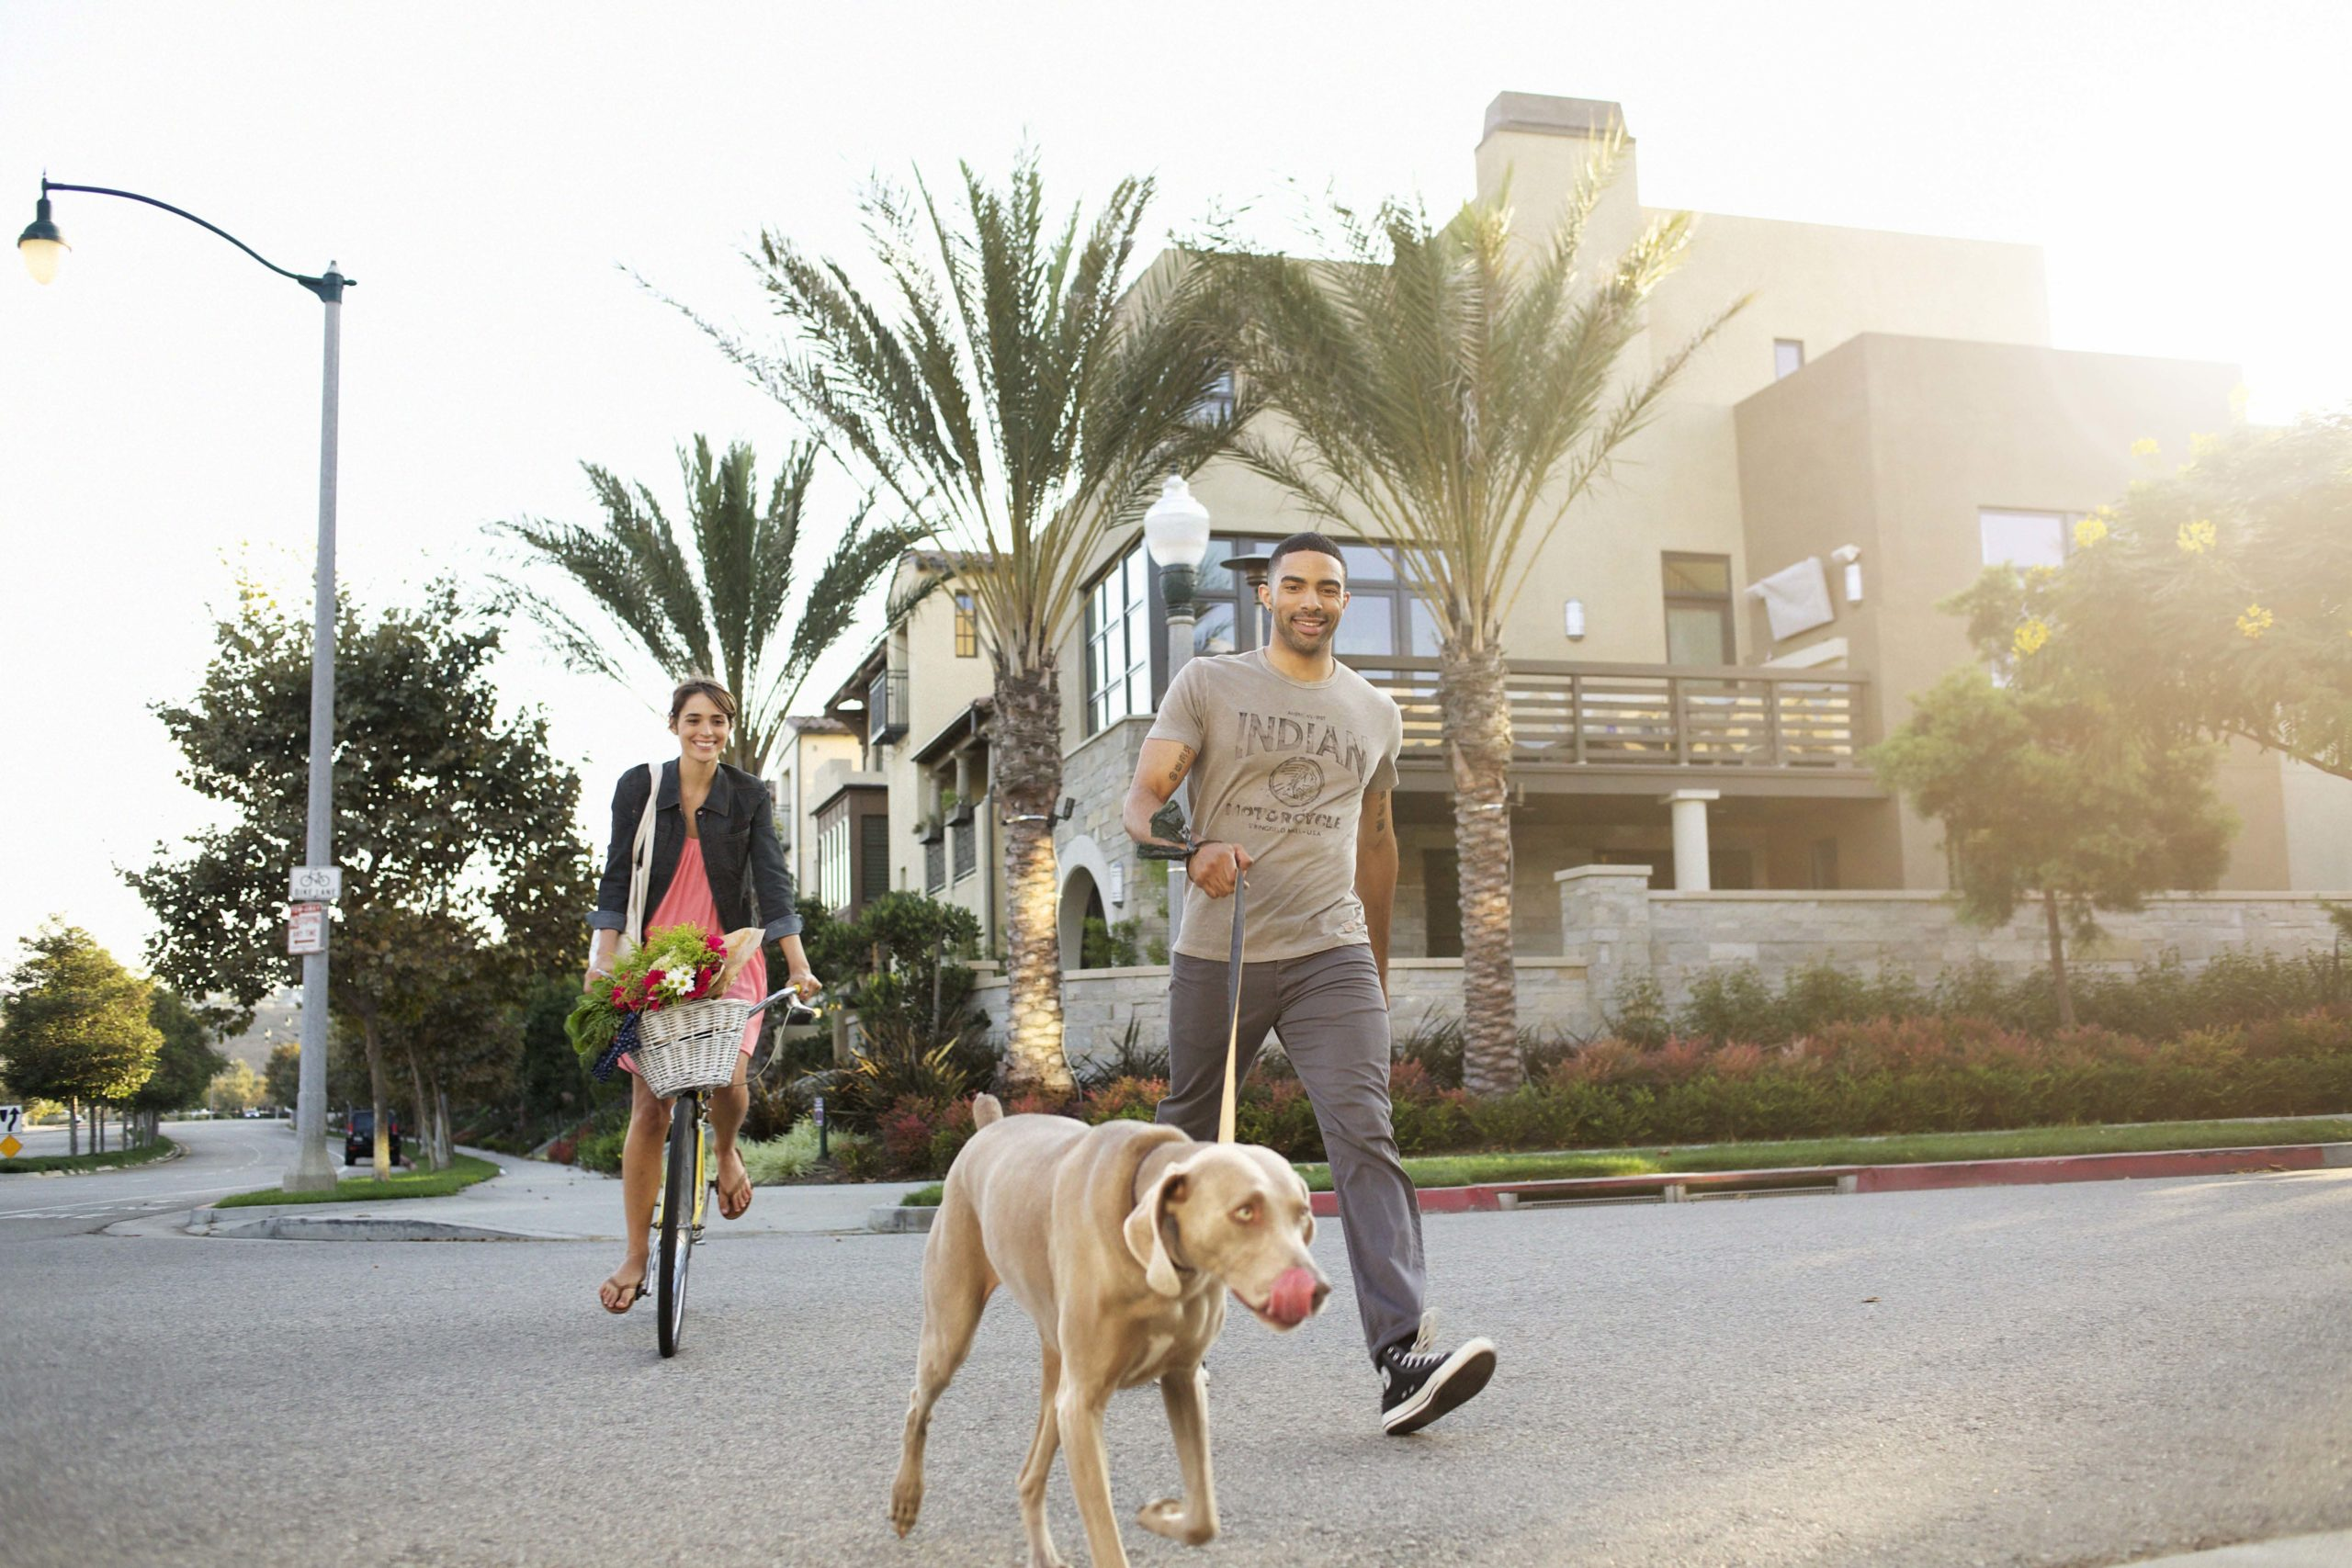 Playa Vista bikes and dog walking